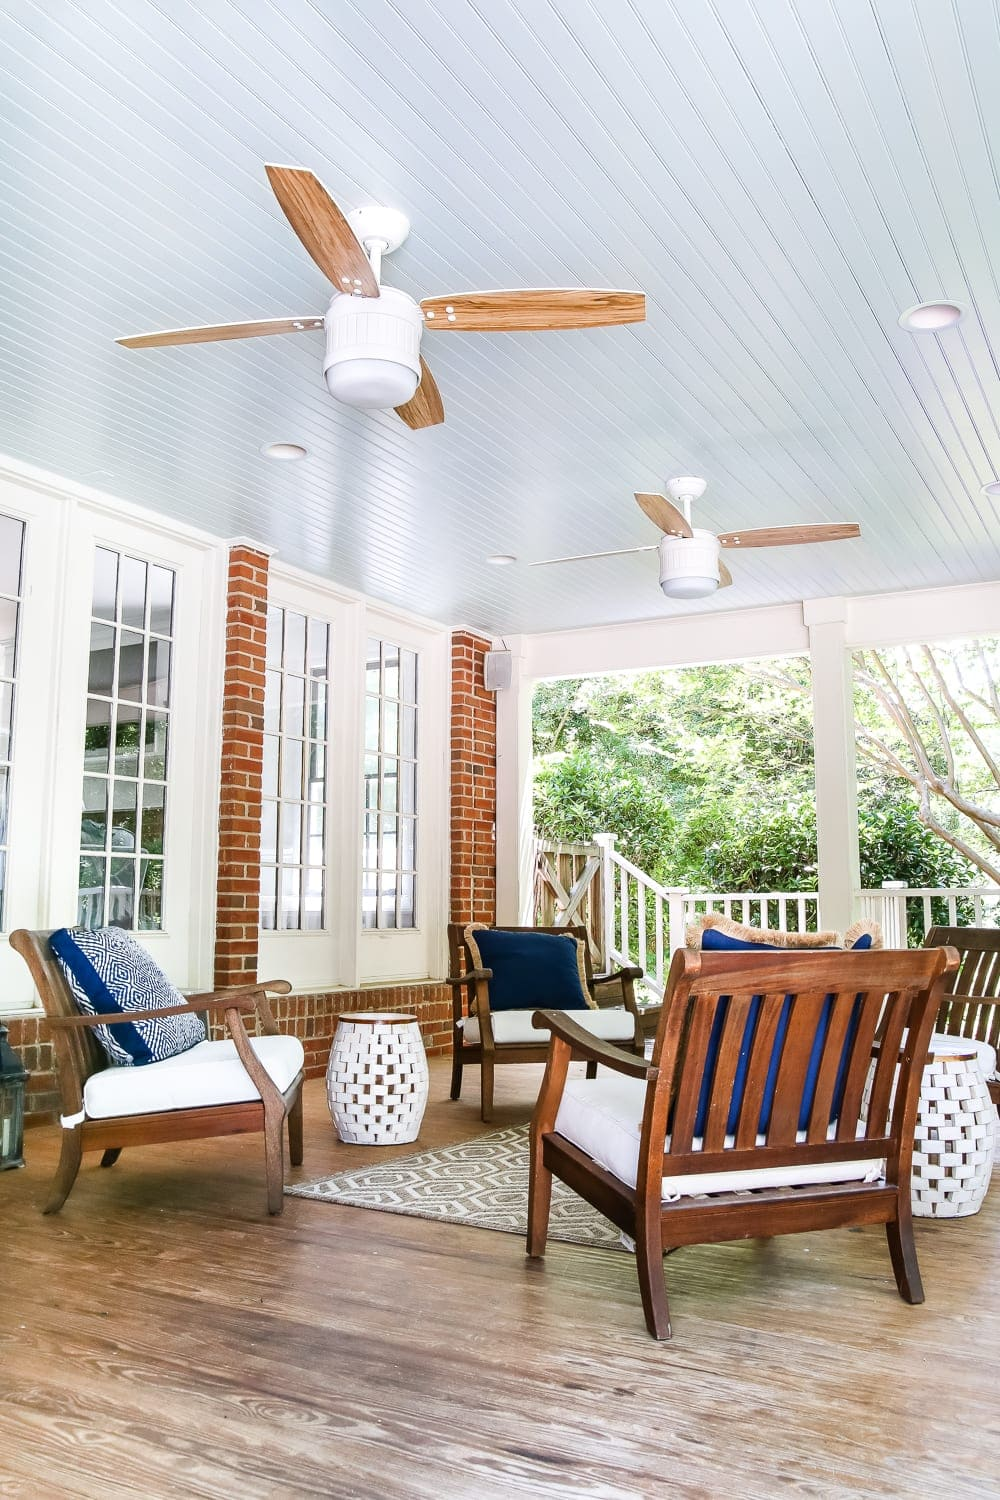 Porch with Light Blue Ceiling and Fans